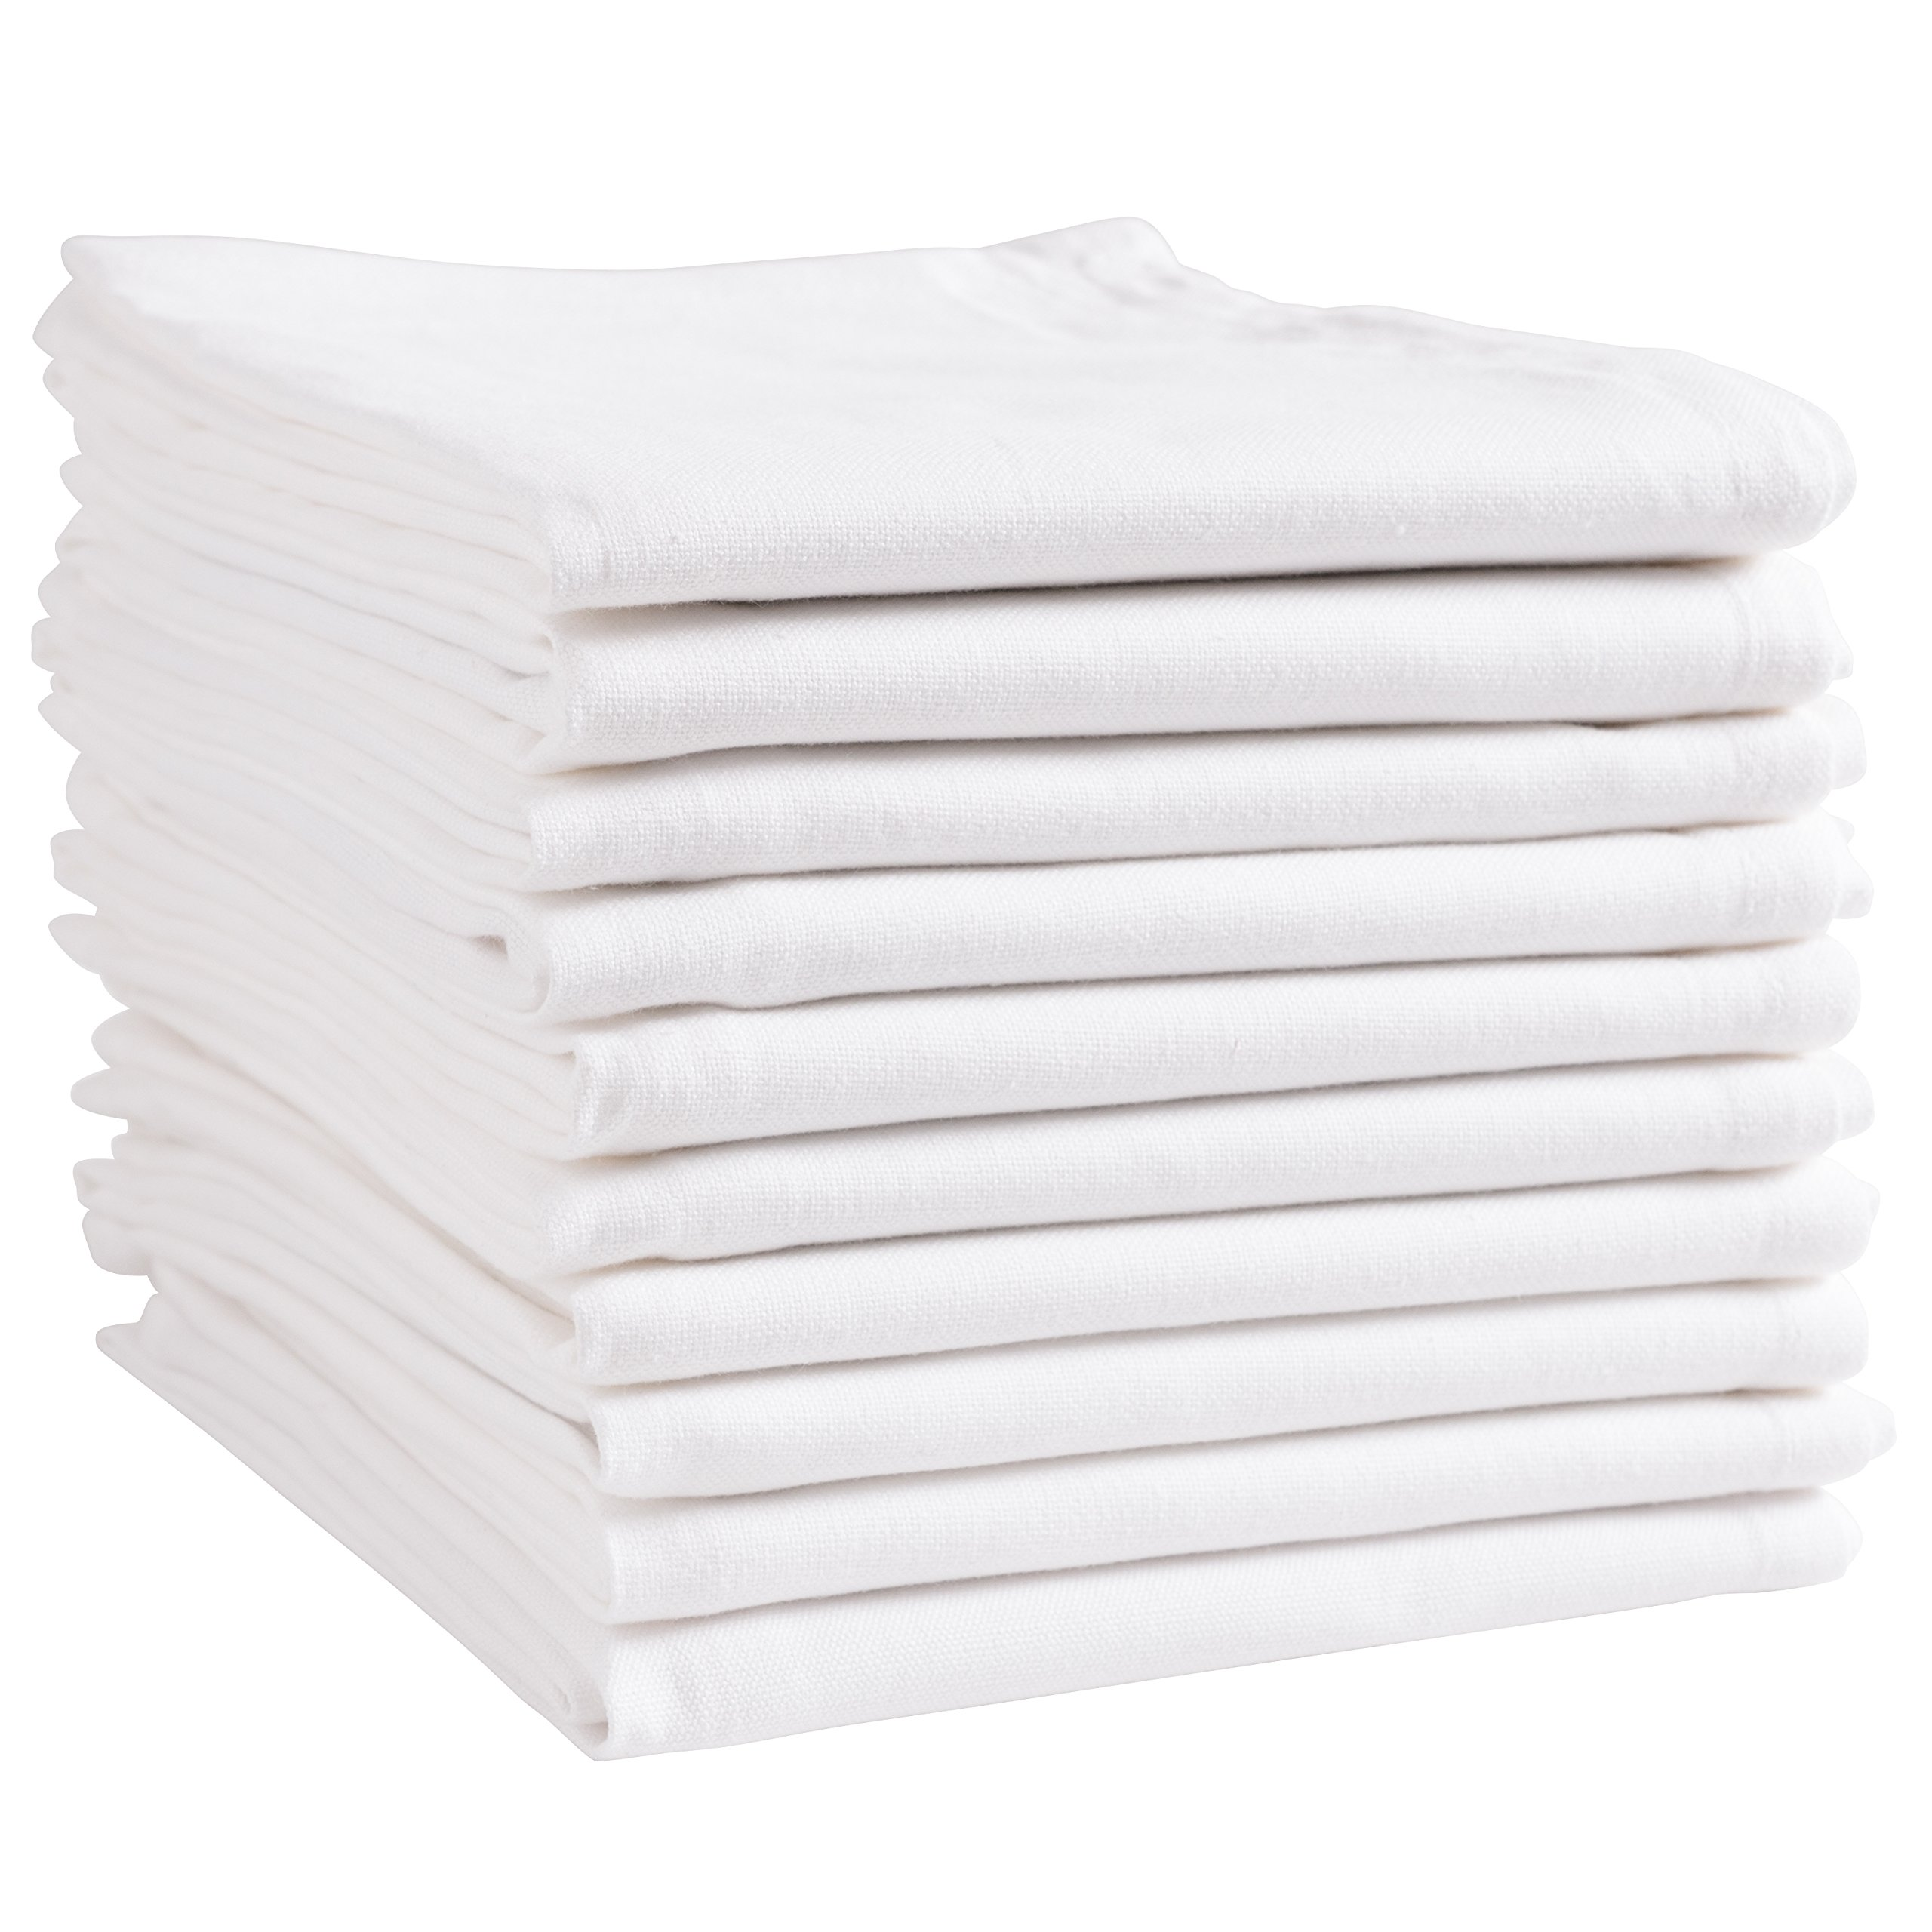 KAF Home White Kitchen Towels, 10 Pack, 100% Cotton - 20 x 30, Soft and Functional Multi-Purpose, Baking, Cooking, Cleaning, Printing, Monogramming, and Embroidery (Plain Weave) by KAF Home